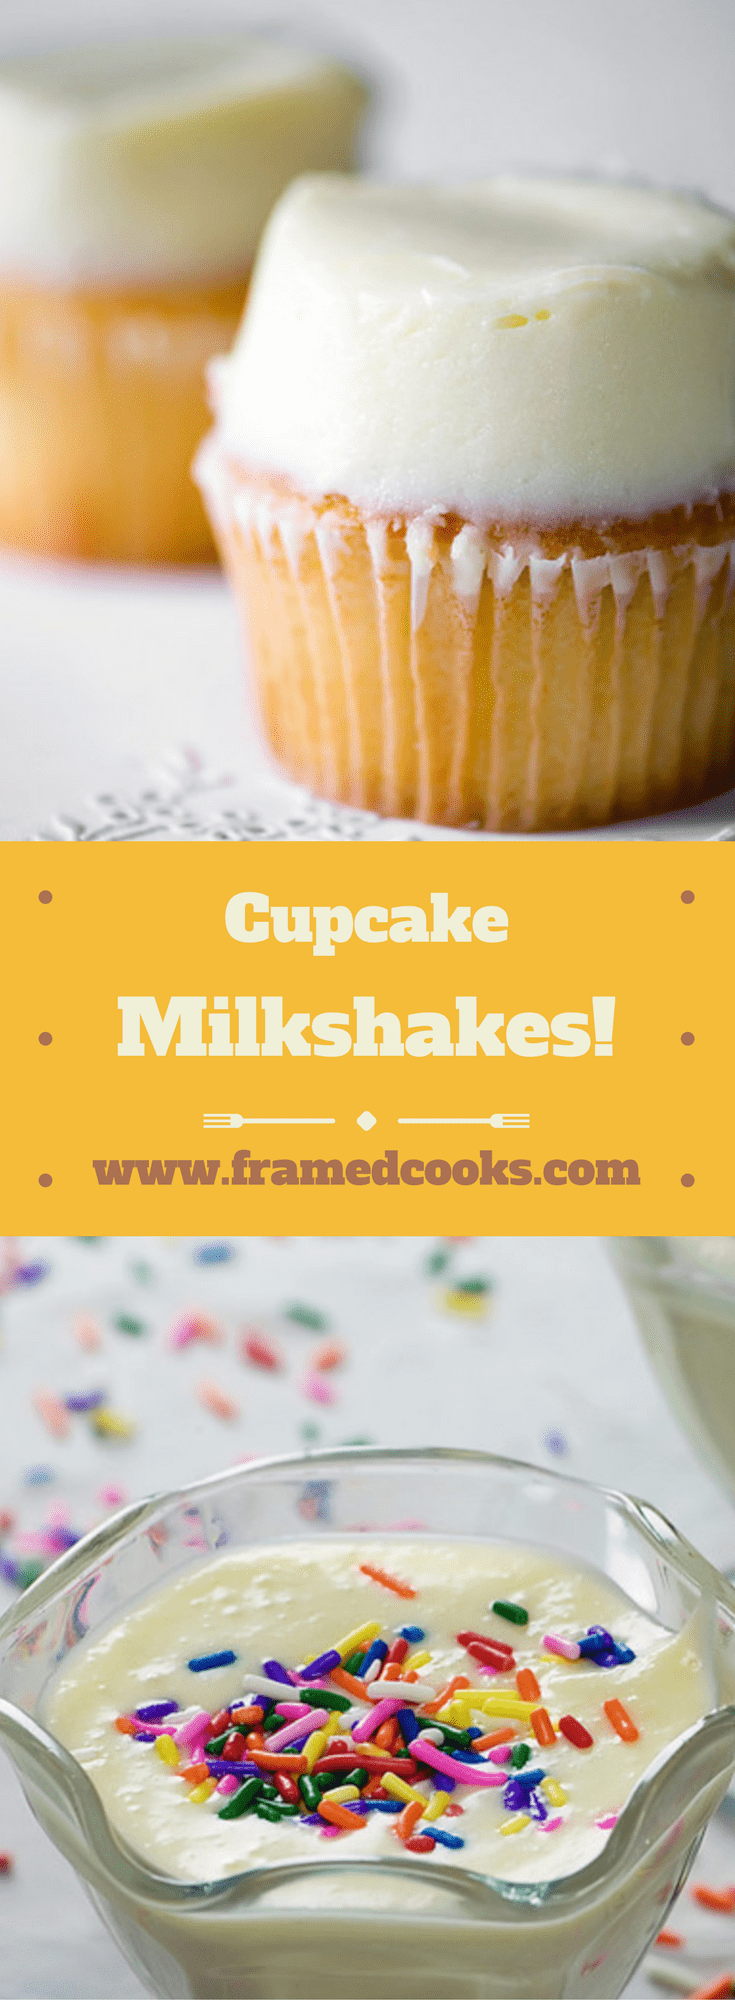 Love cupcakes?  Love milkshakes?  Here are not one but two super easy recipes for making cupcake milkshakes.  Welcome to your new favorite dessert!